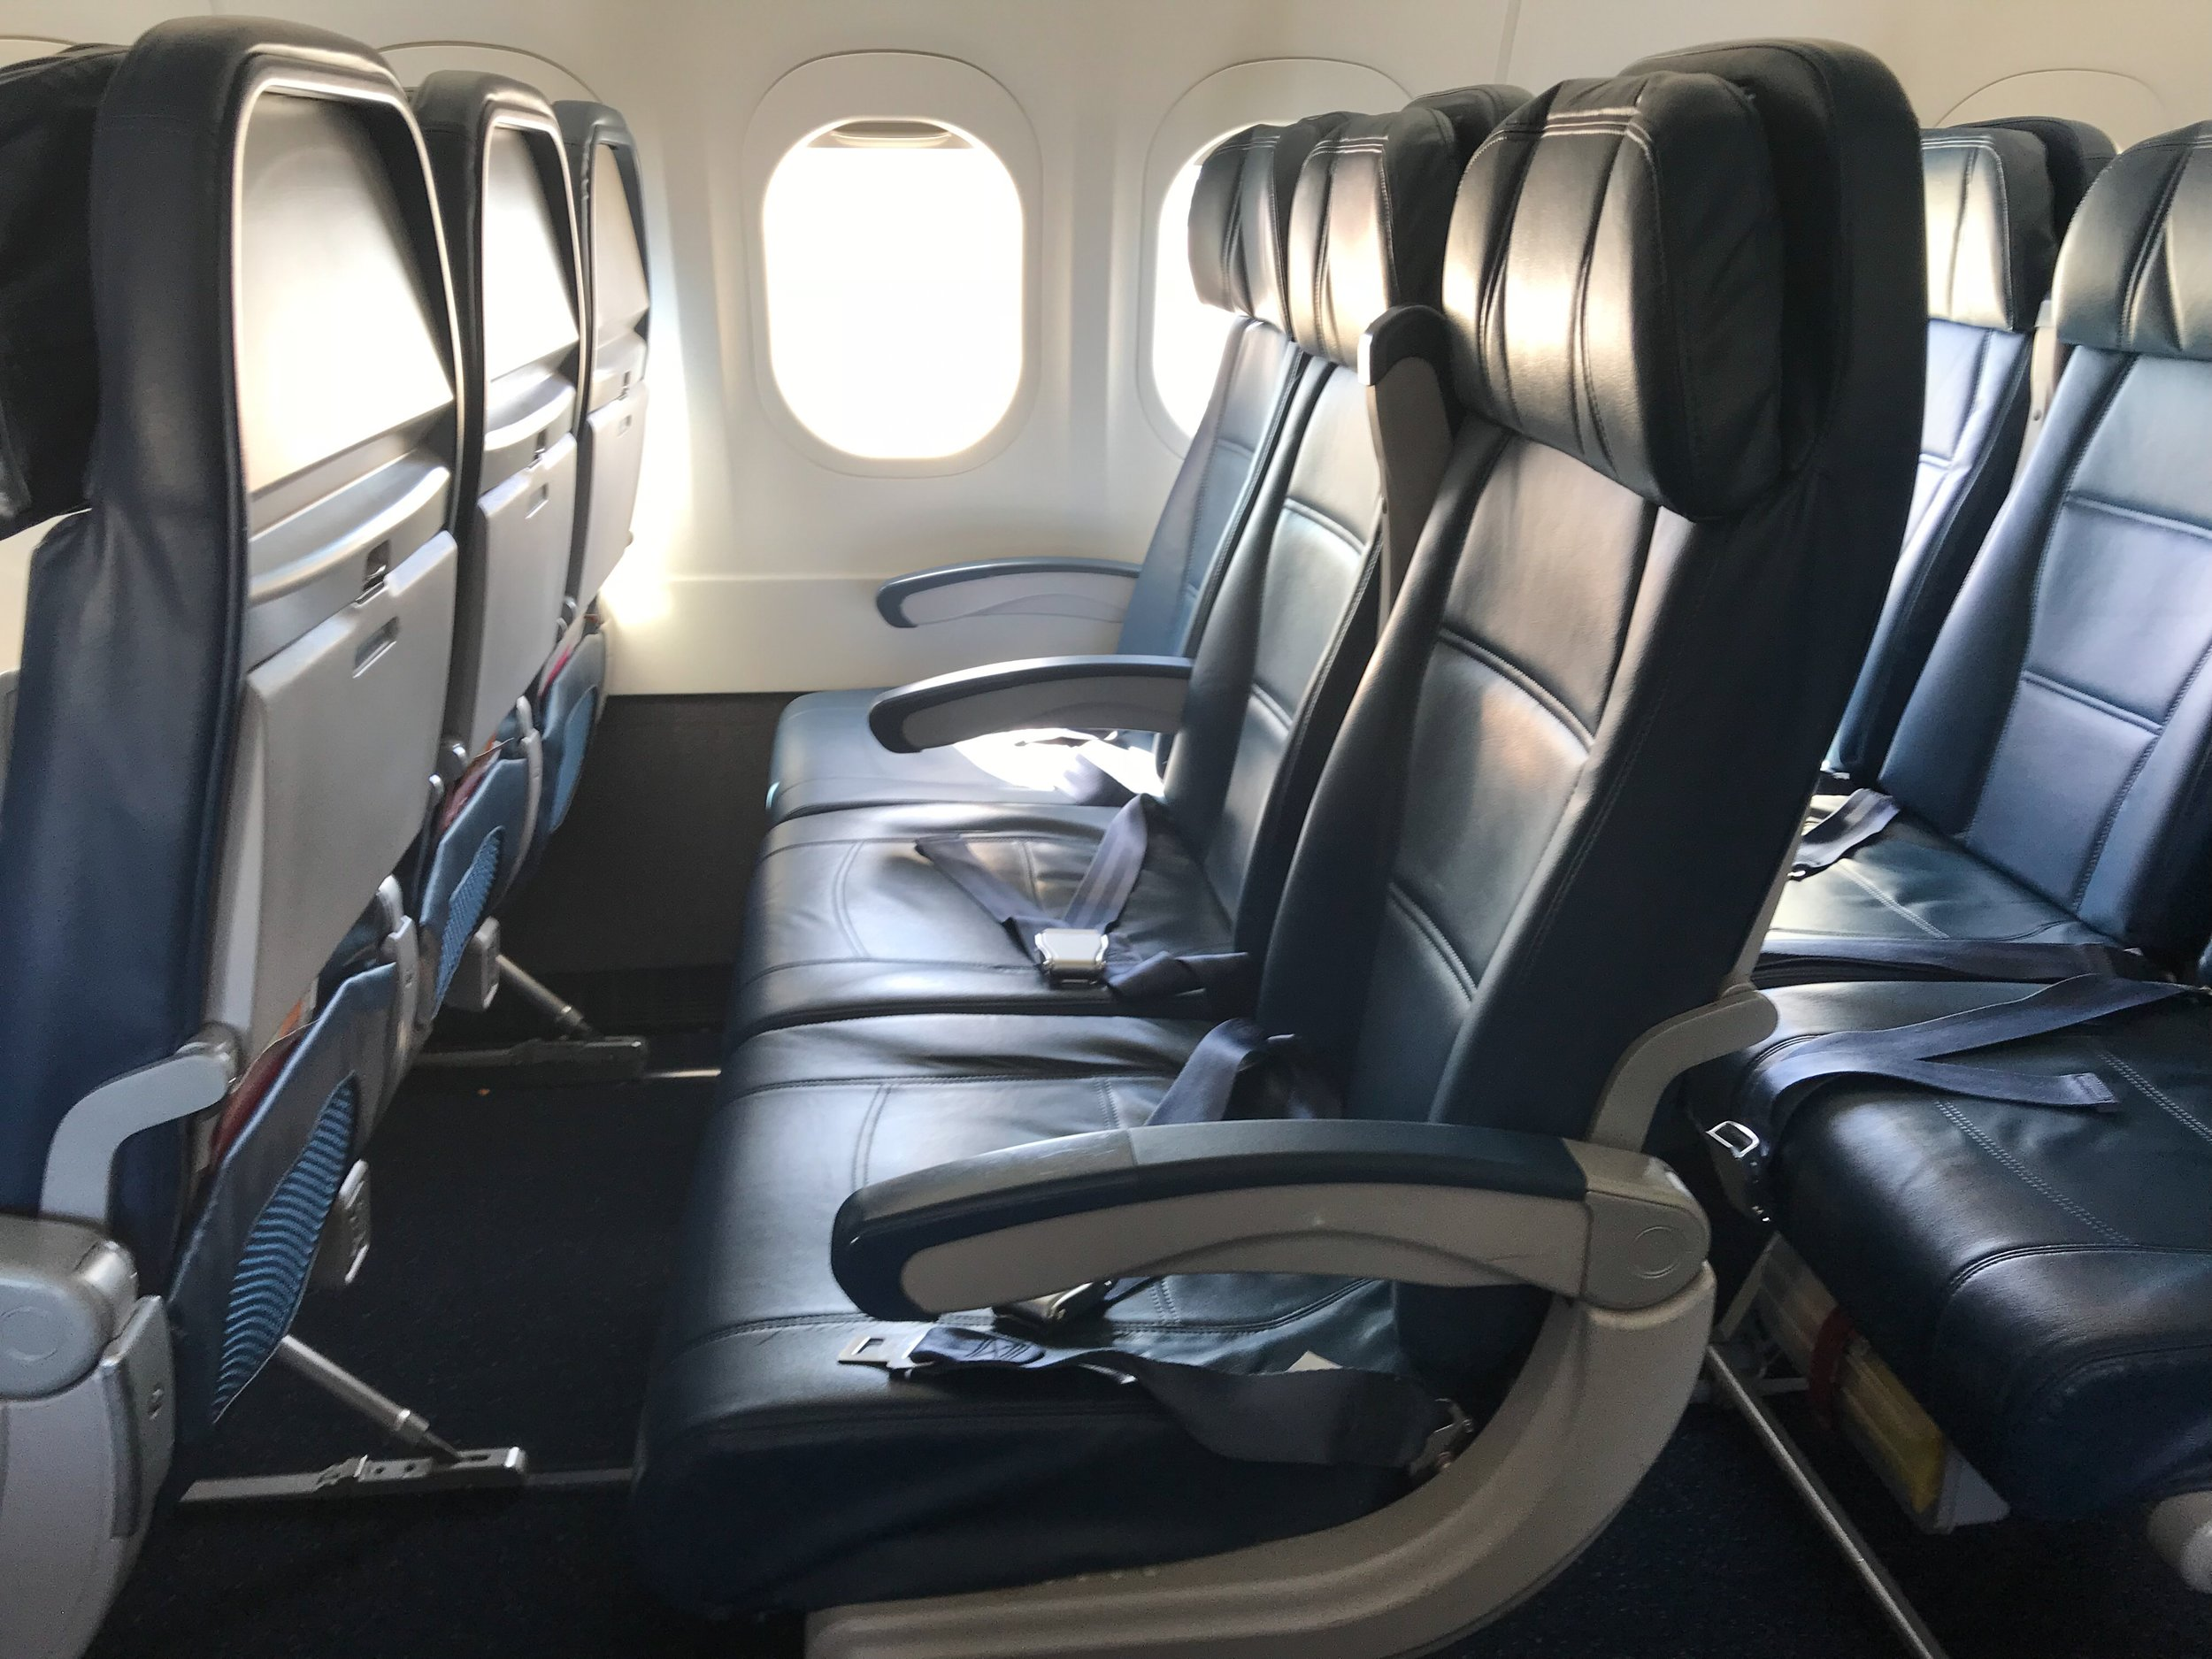 The cabin was bright and airy and the seats were comfortable, at least for a short two-hour flight.